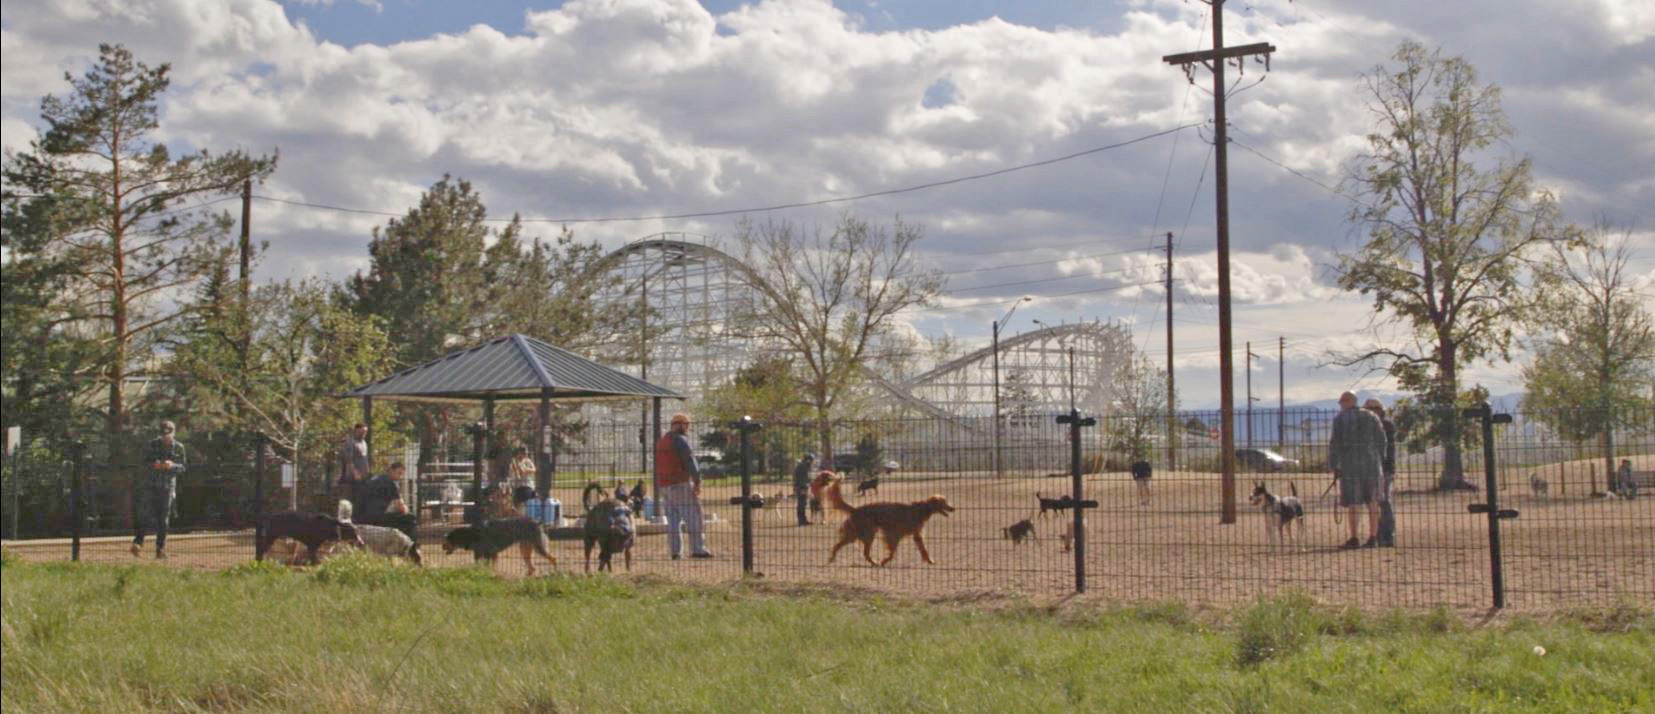 Image of Berkeley Dog Park. People can be observed with their dogs, there is an amusement park ride in the background